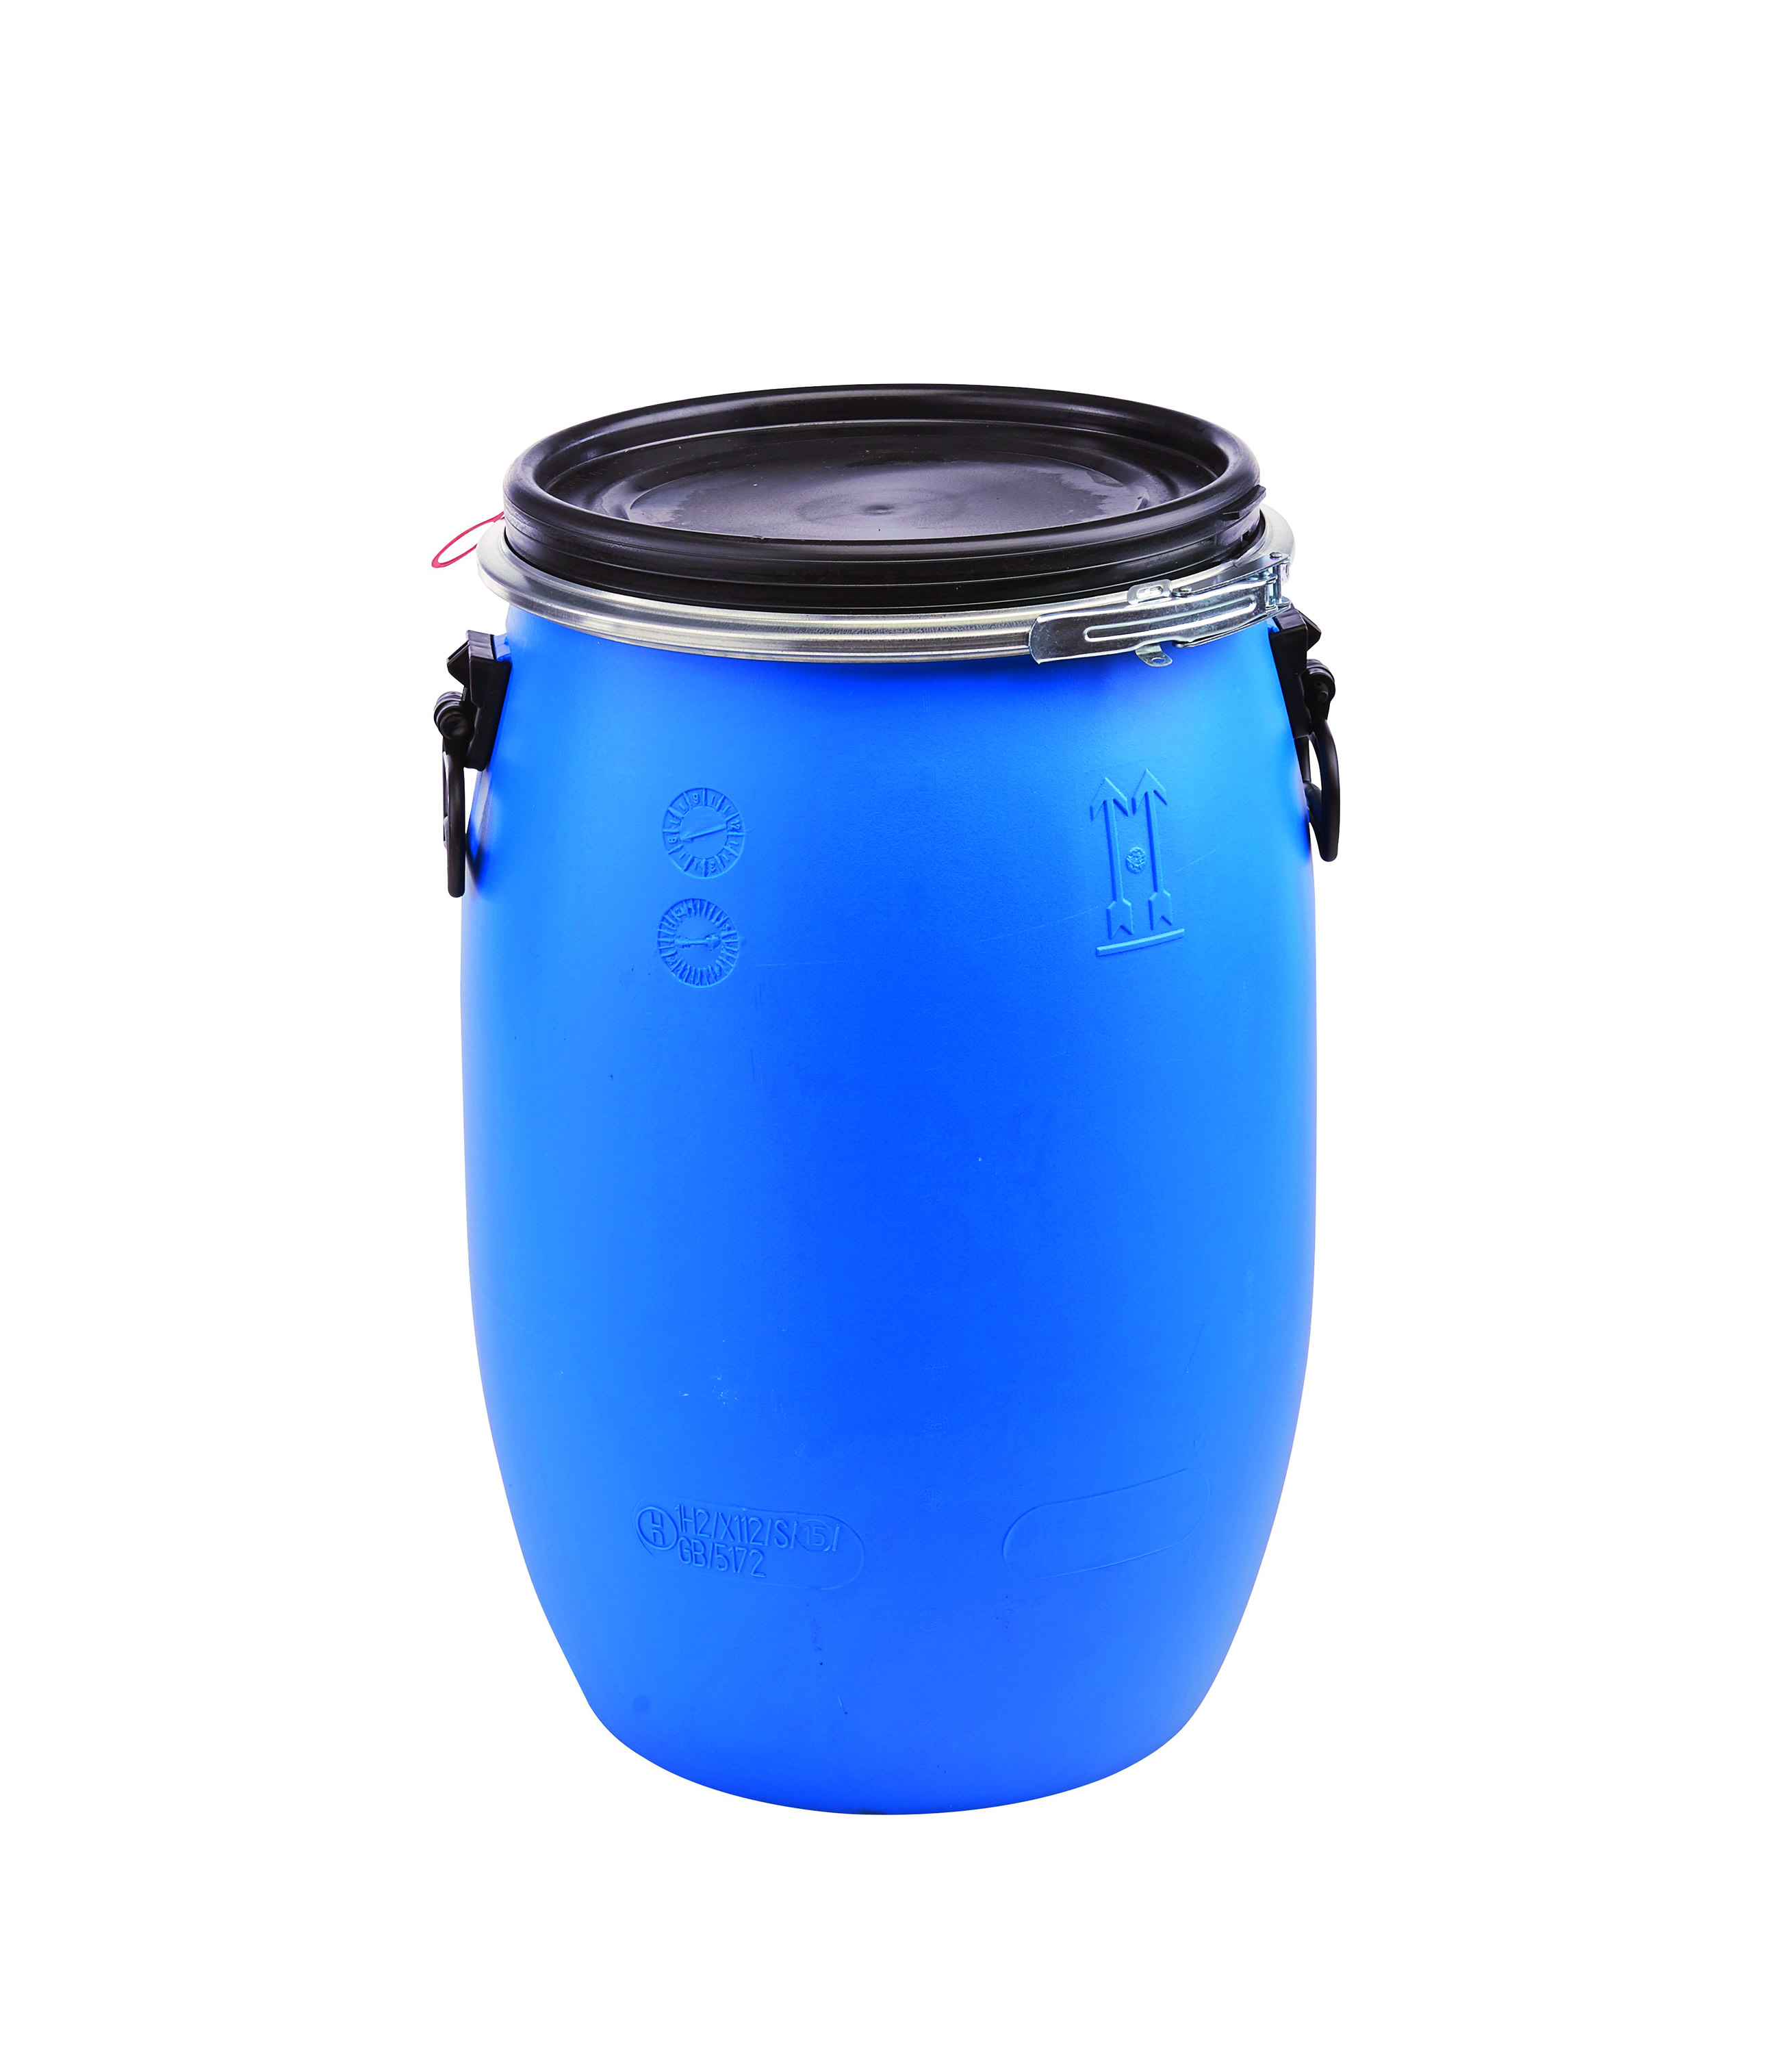 Plastic Drum main 30L